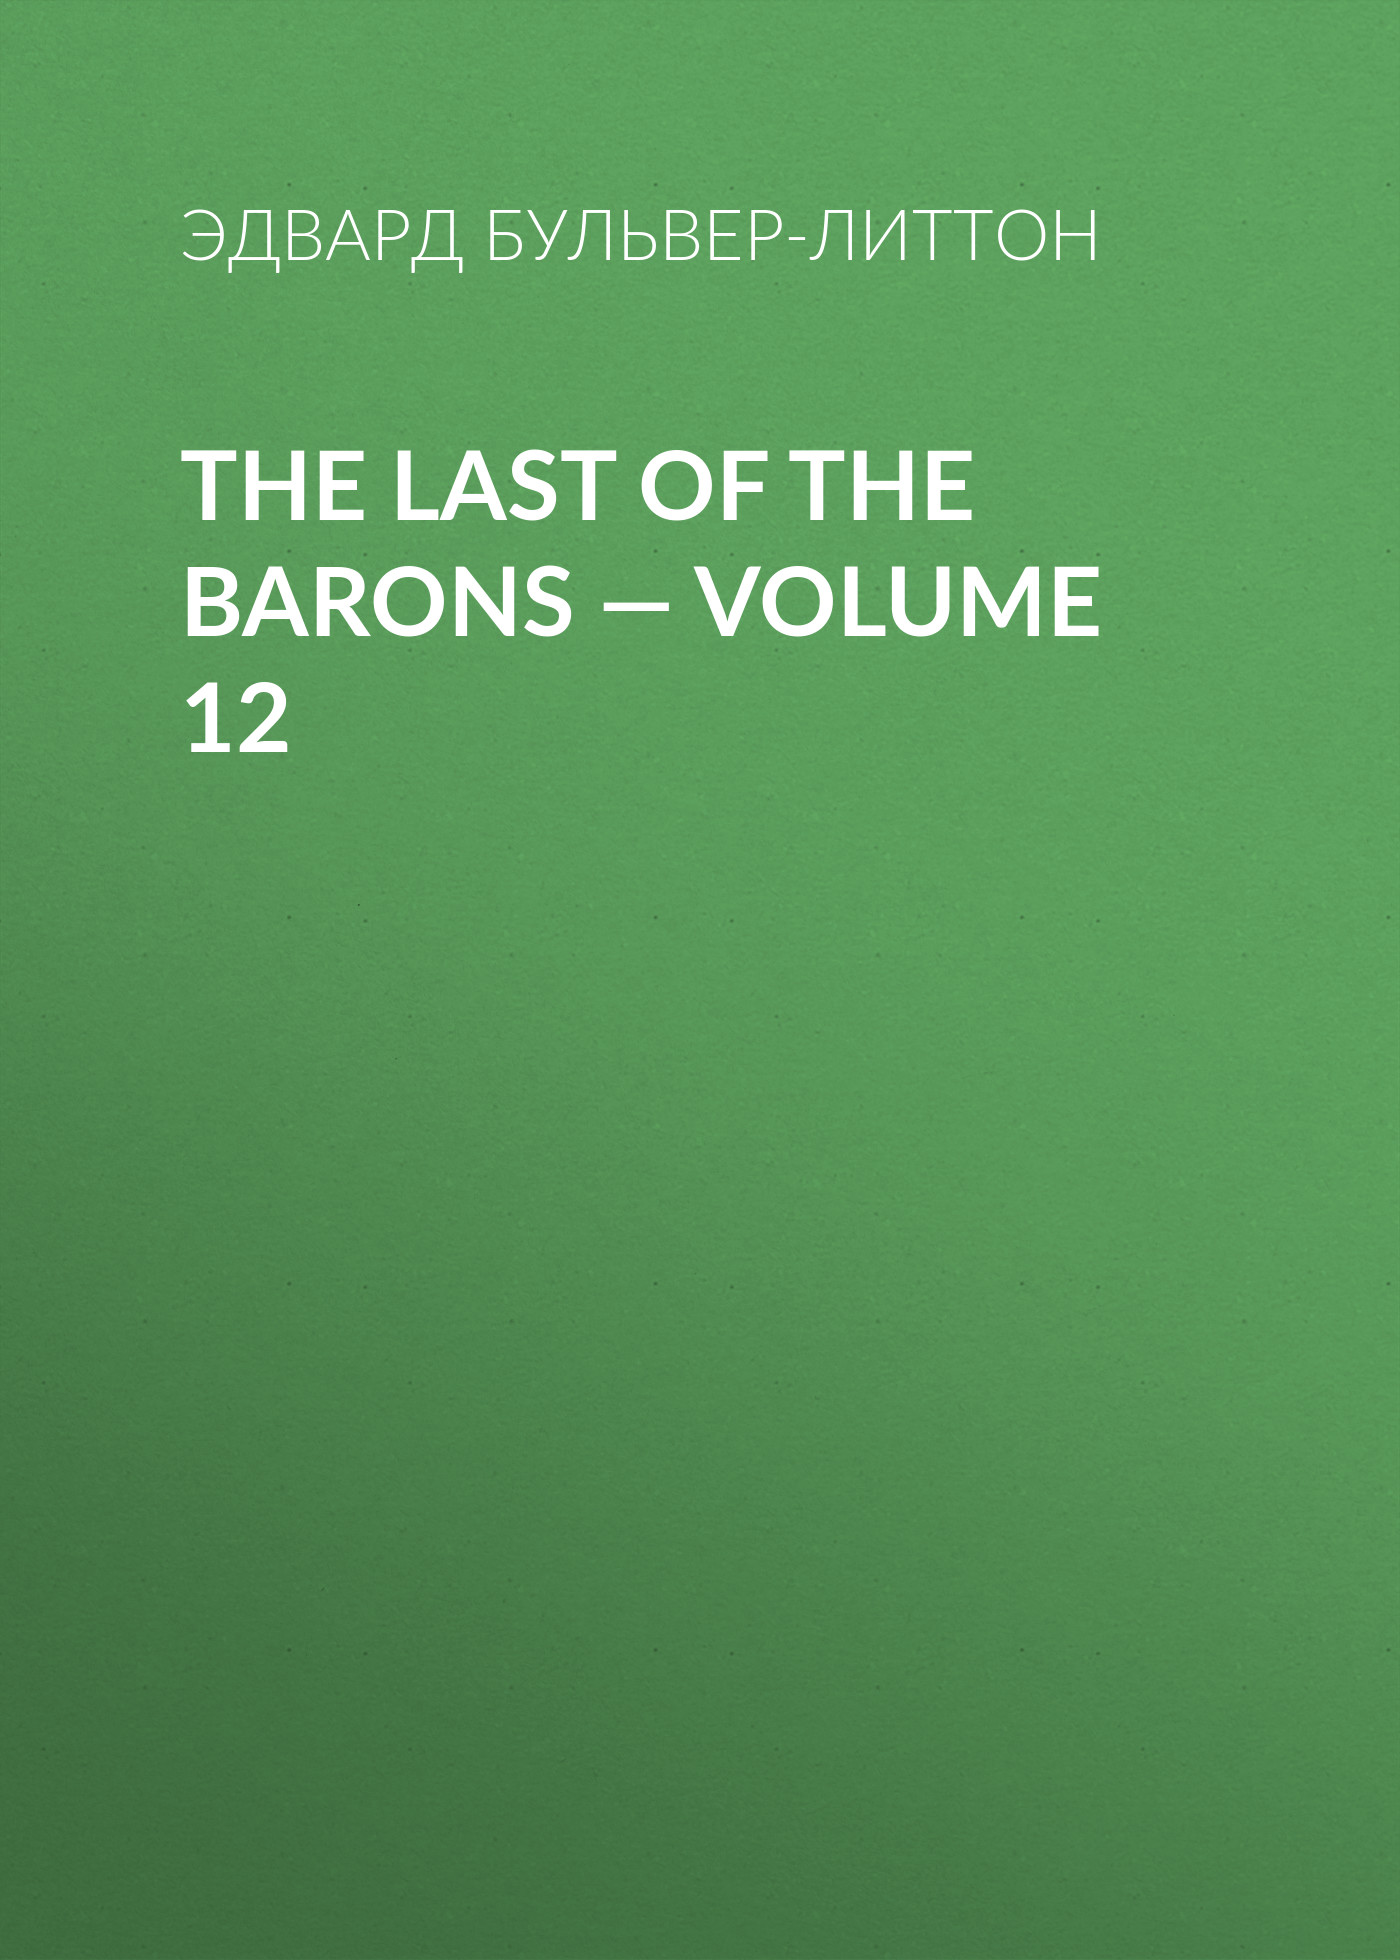 Эдвард Бульвер-Литтон The Last of the Barons — Volume 12 fayrene preston the barons of texas tess